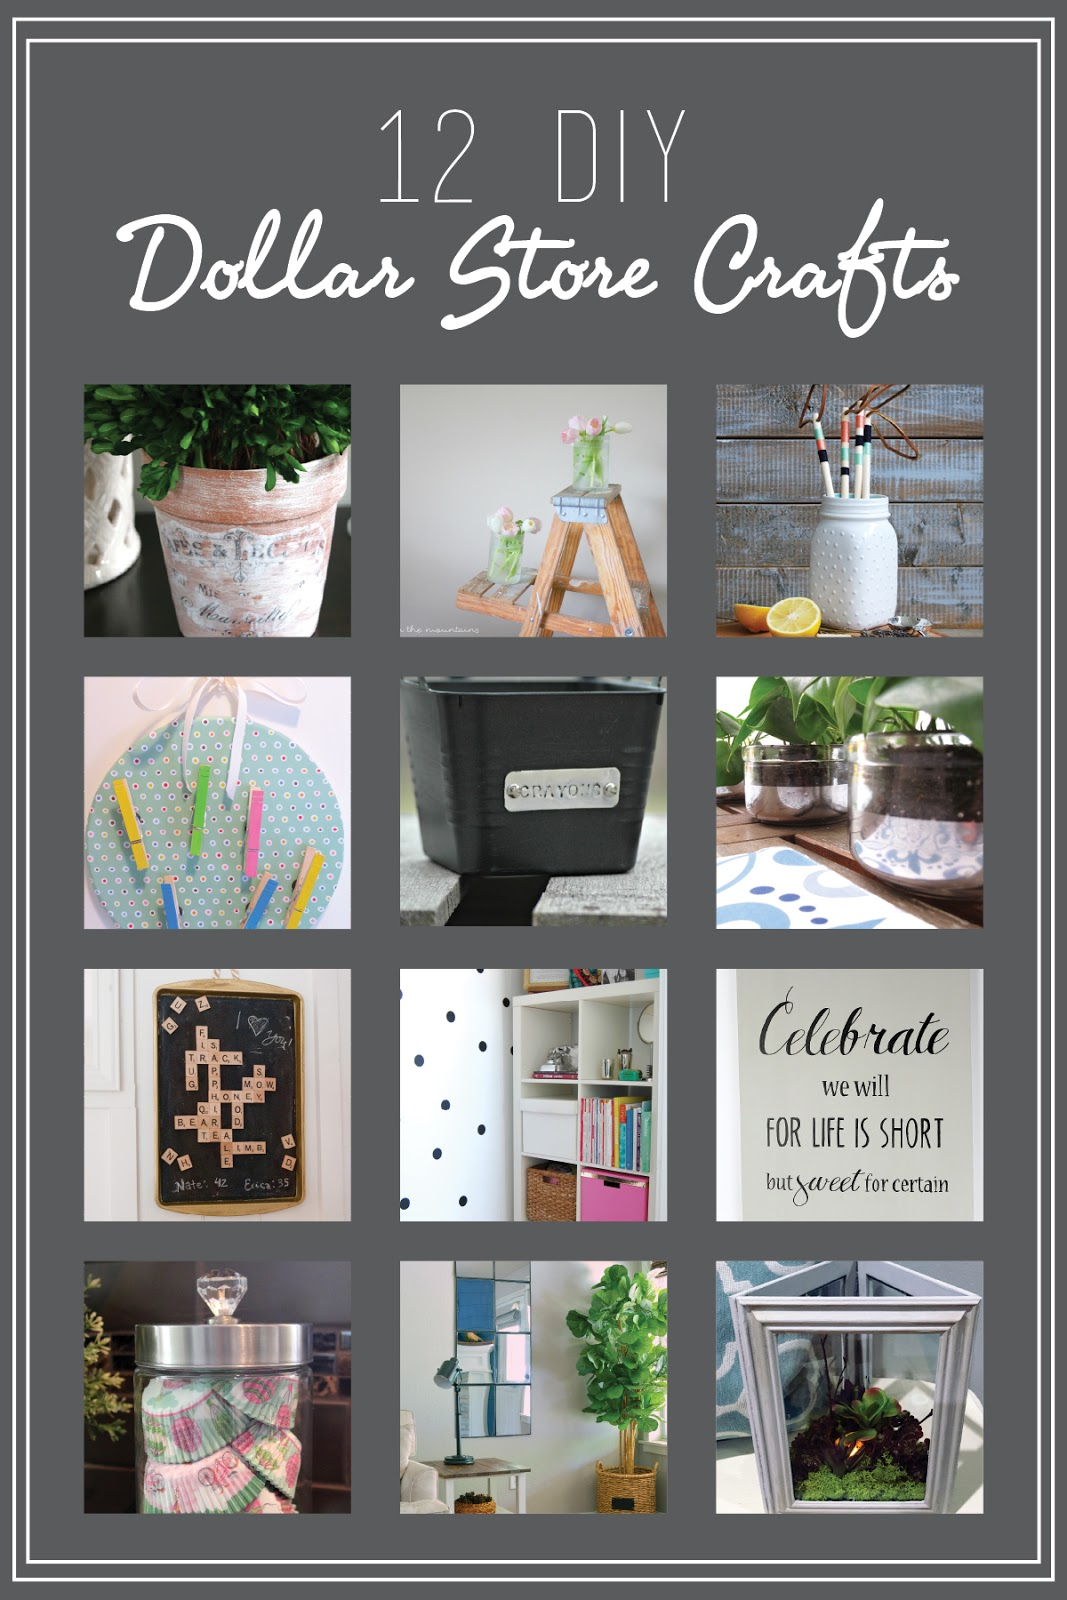 12 DIY Dollar Store crafts